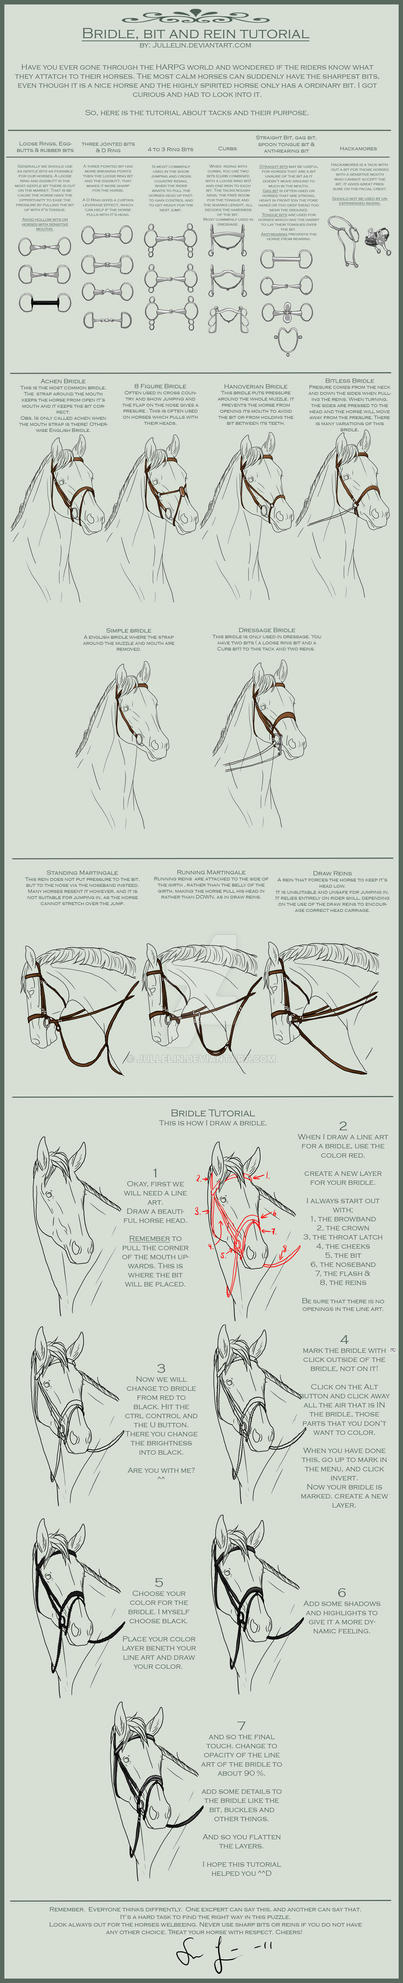 Bridle, Bit and Reins Tutorial by Jullelin